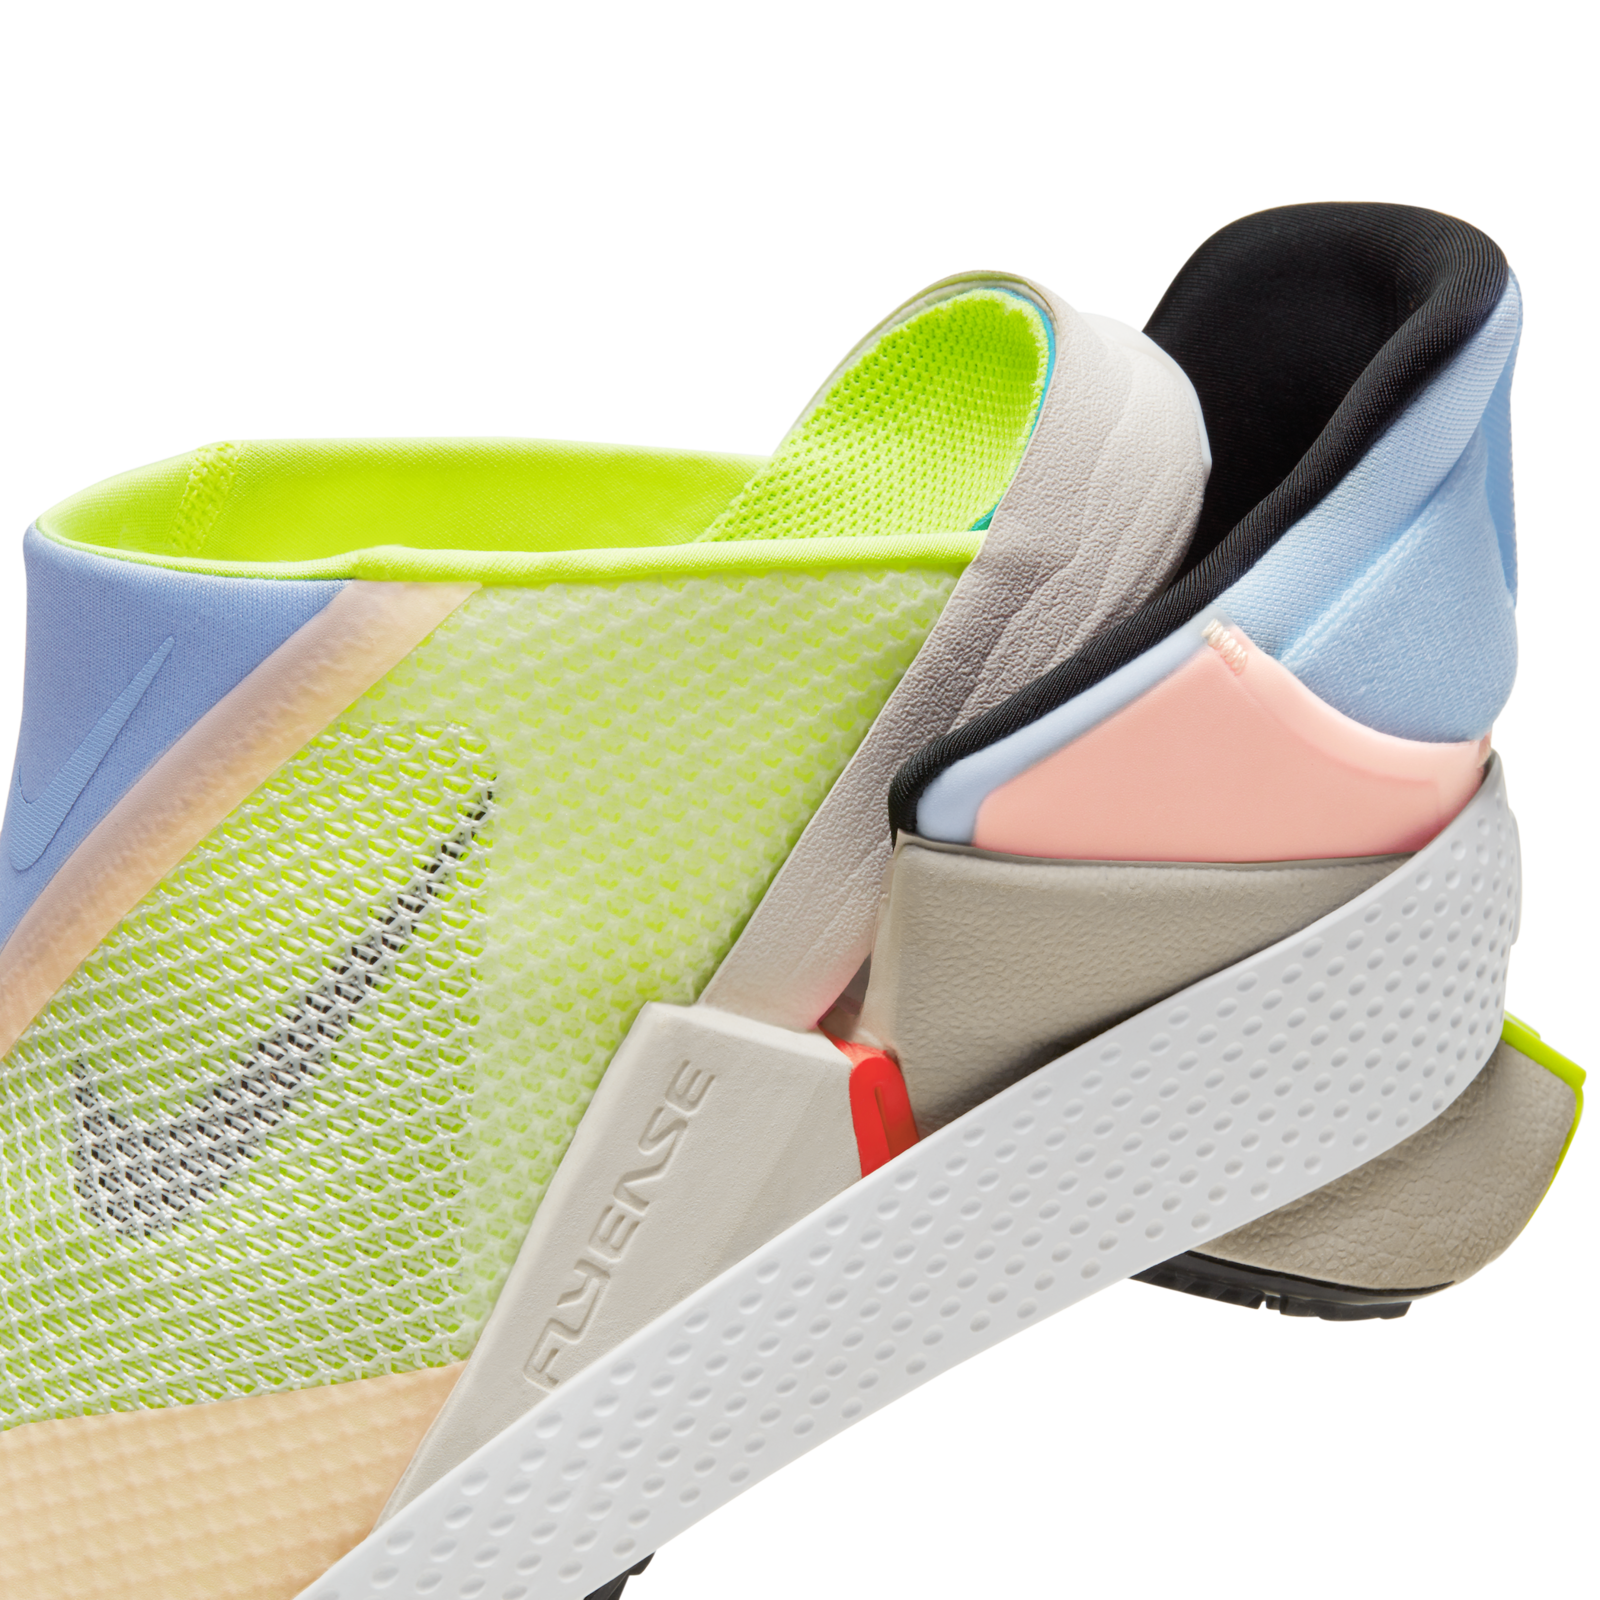 Nike Go FlyEase Hands-Free Shoe  4